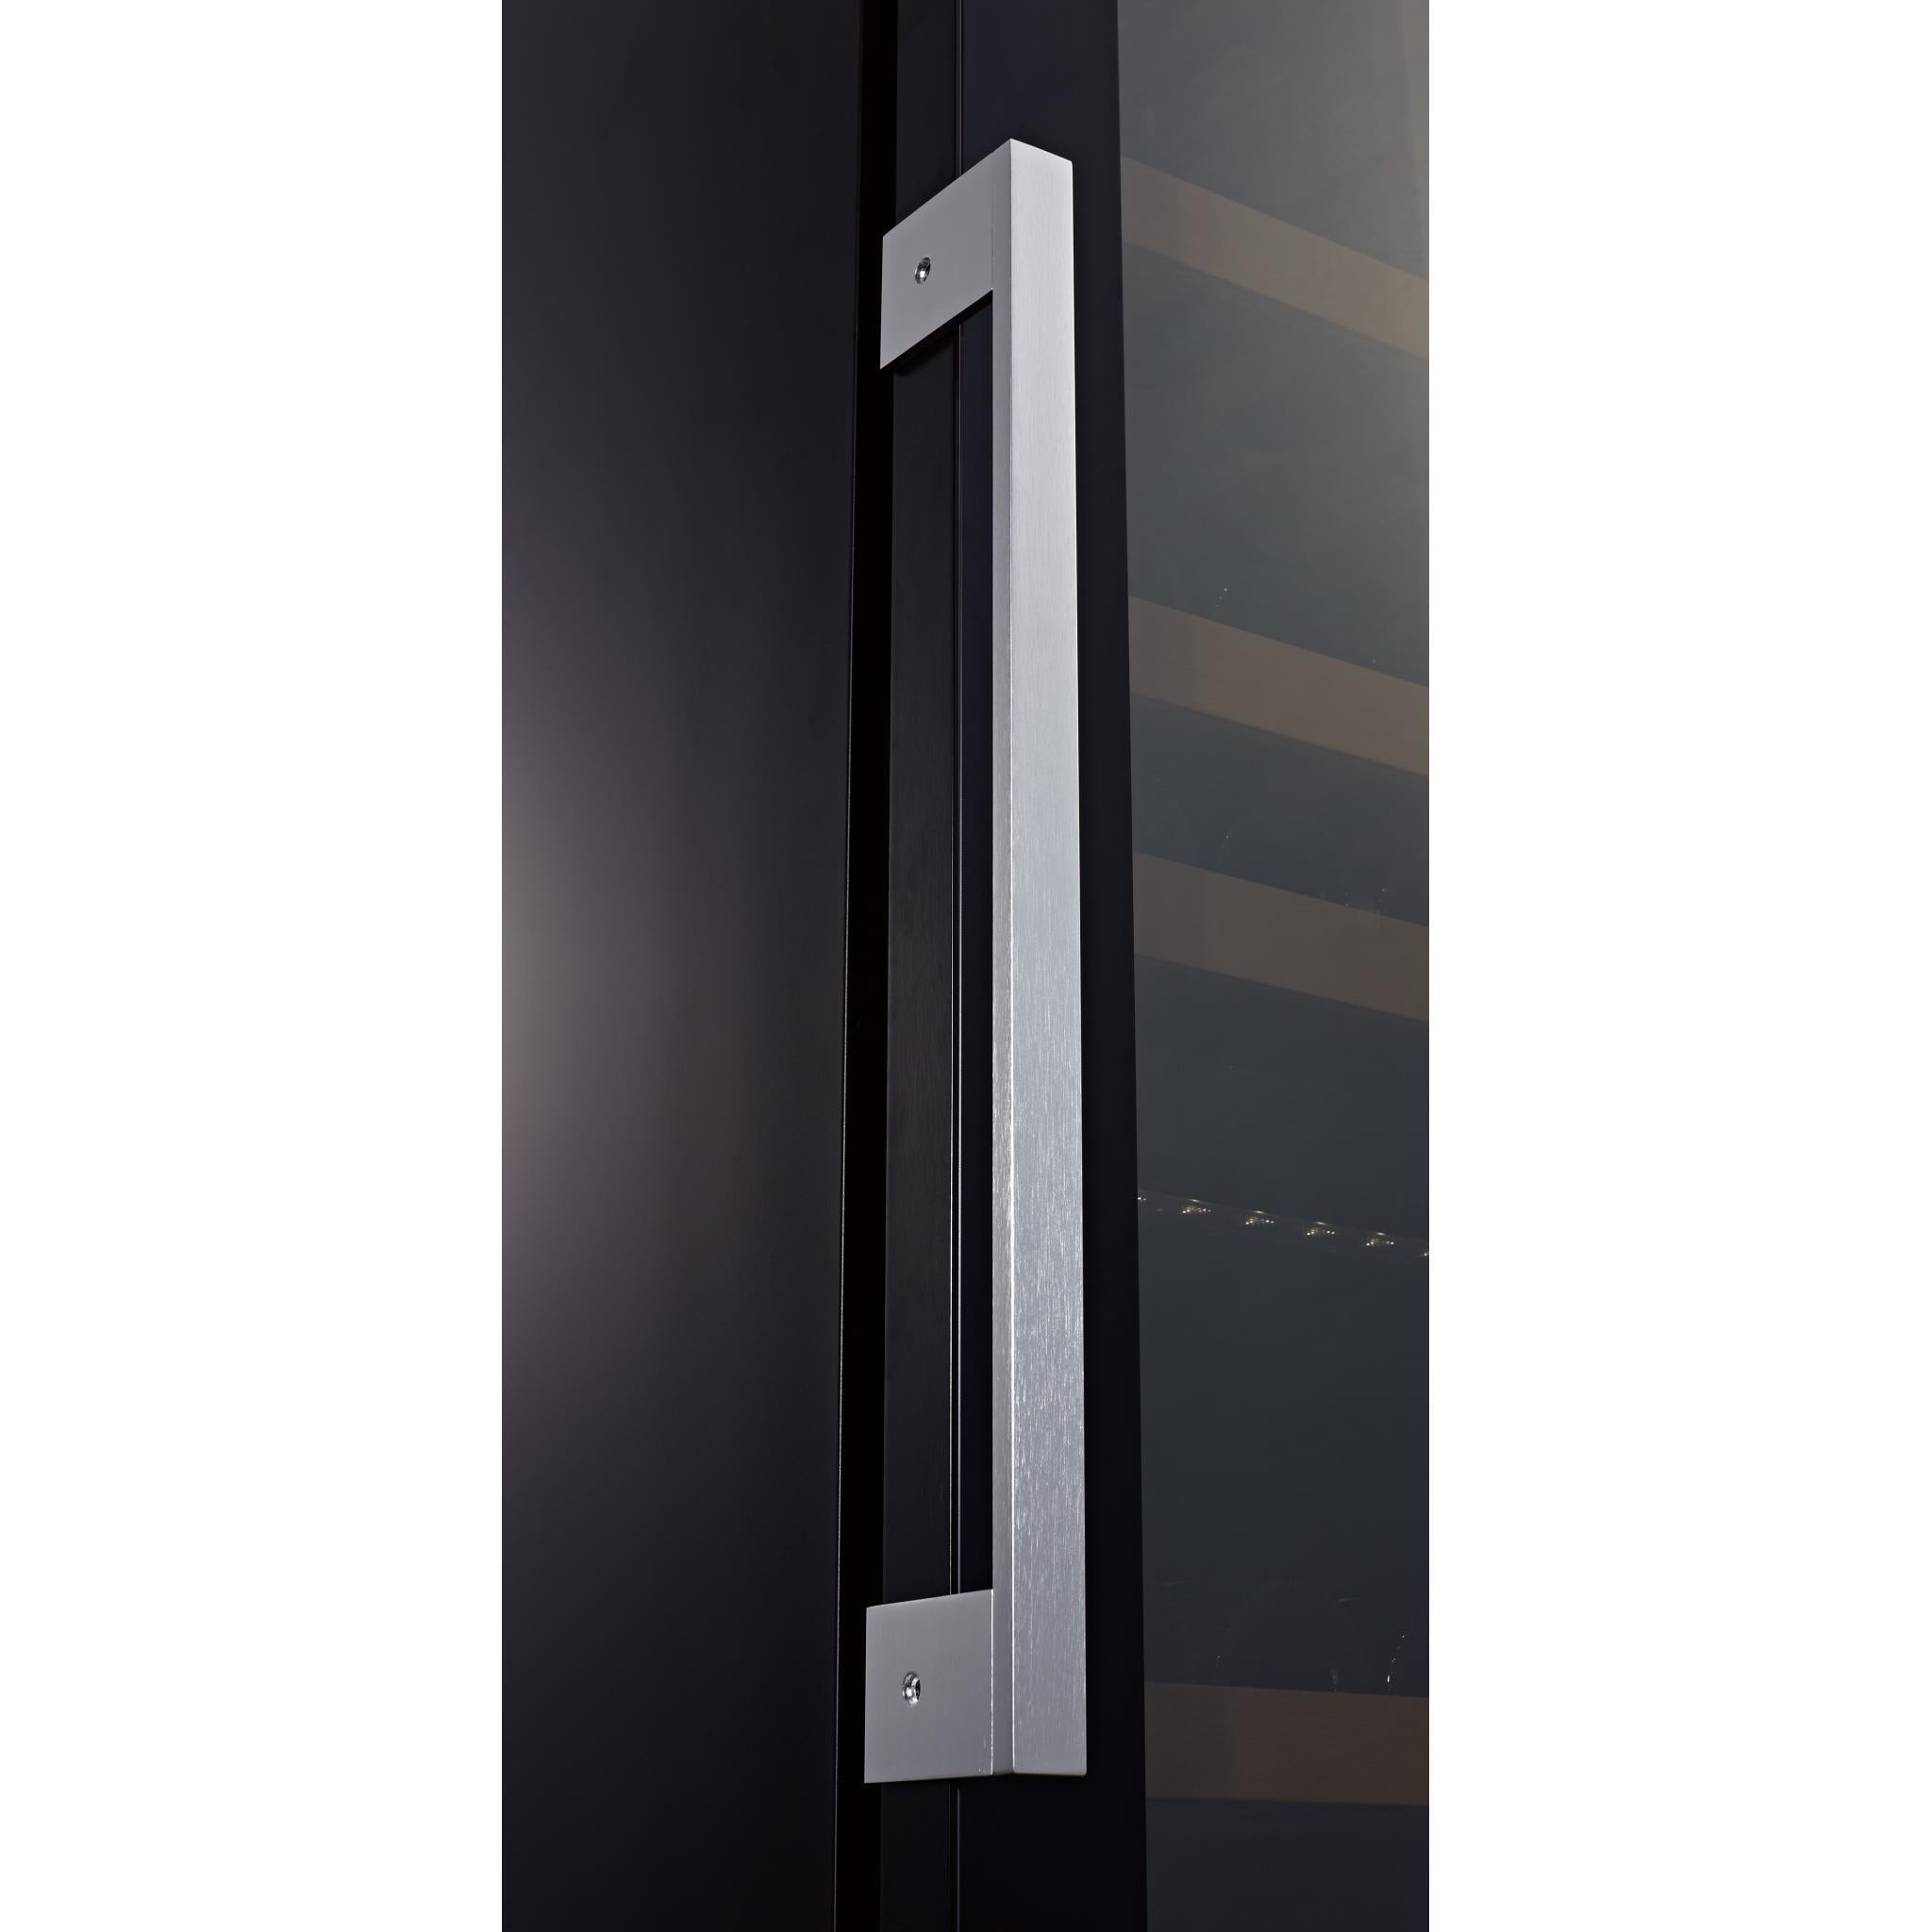 Swisscave WLB-160DF - Black Edition Dual Zone - Built In Wine Cooler / Wine Fridge (40-50 BOT) - 595mm Wide